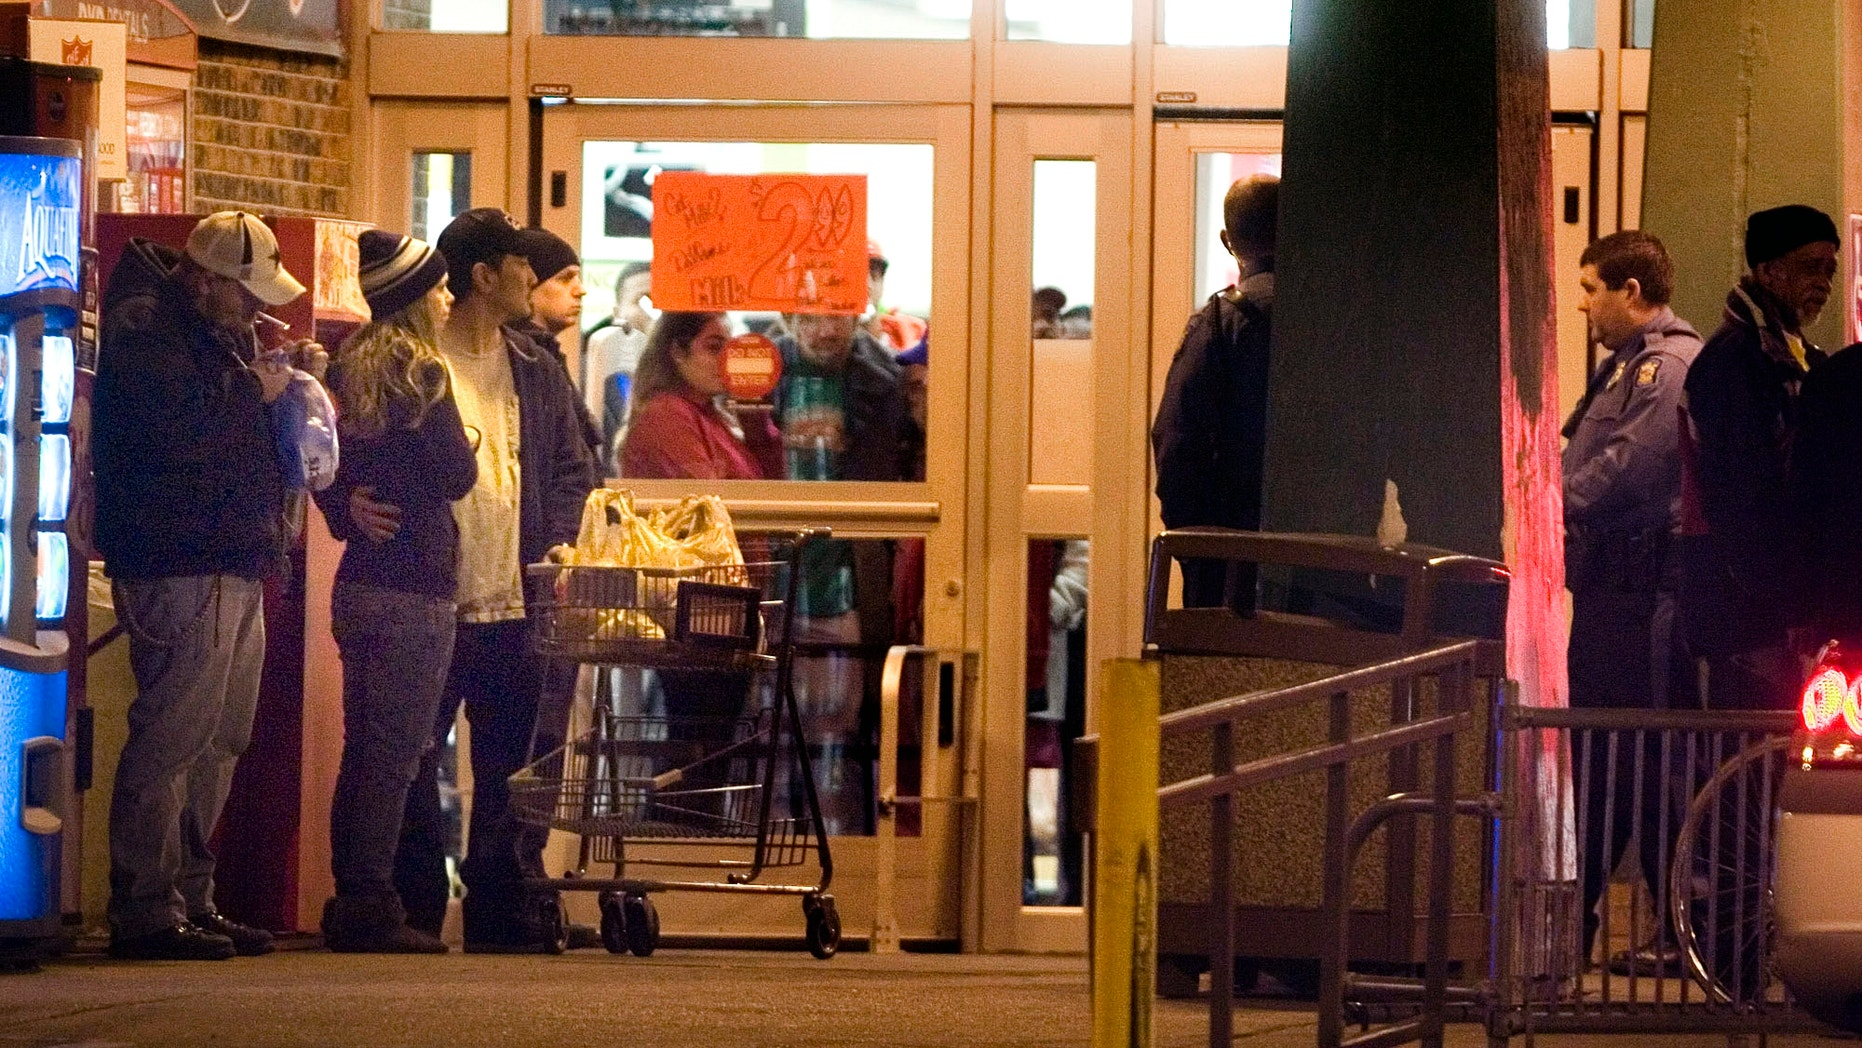 Dec. 16, 2012: Bystanders watch as Topeka police investigate at the scene of a shooting outside a grocery store in Topeka, Kan.